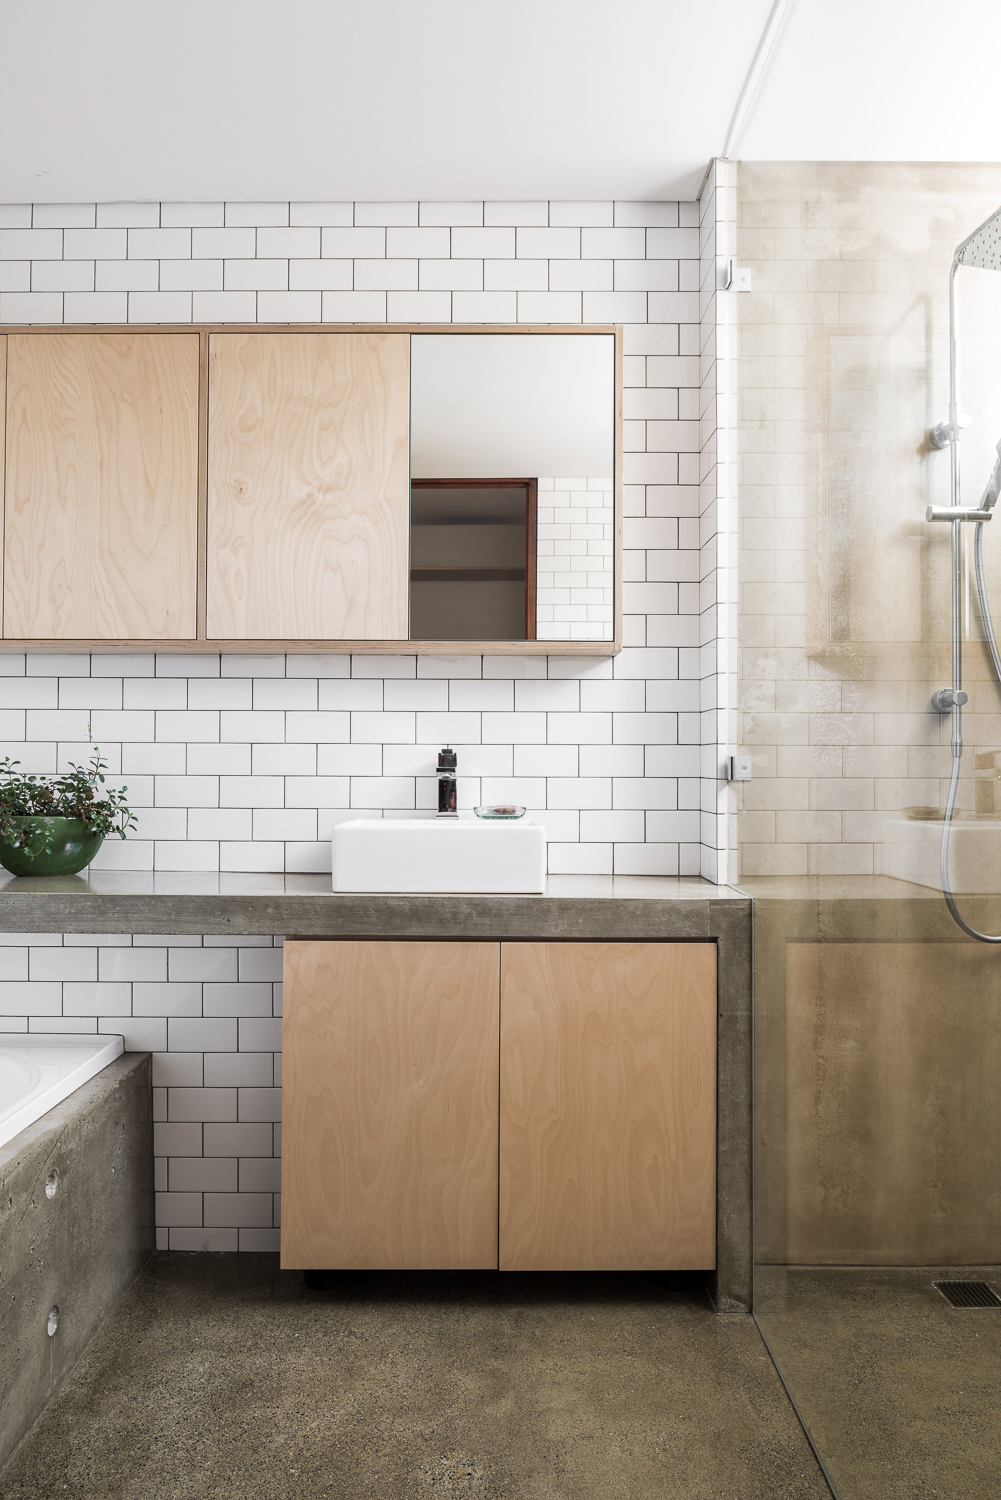 Gallery Of Silver Street House By Ehdo Architecture Local Design And Interiors South Fremantle, Wa Image 17